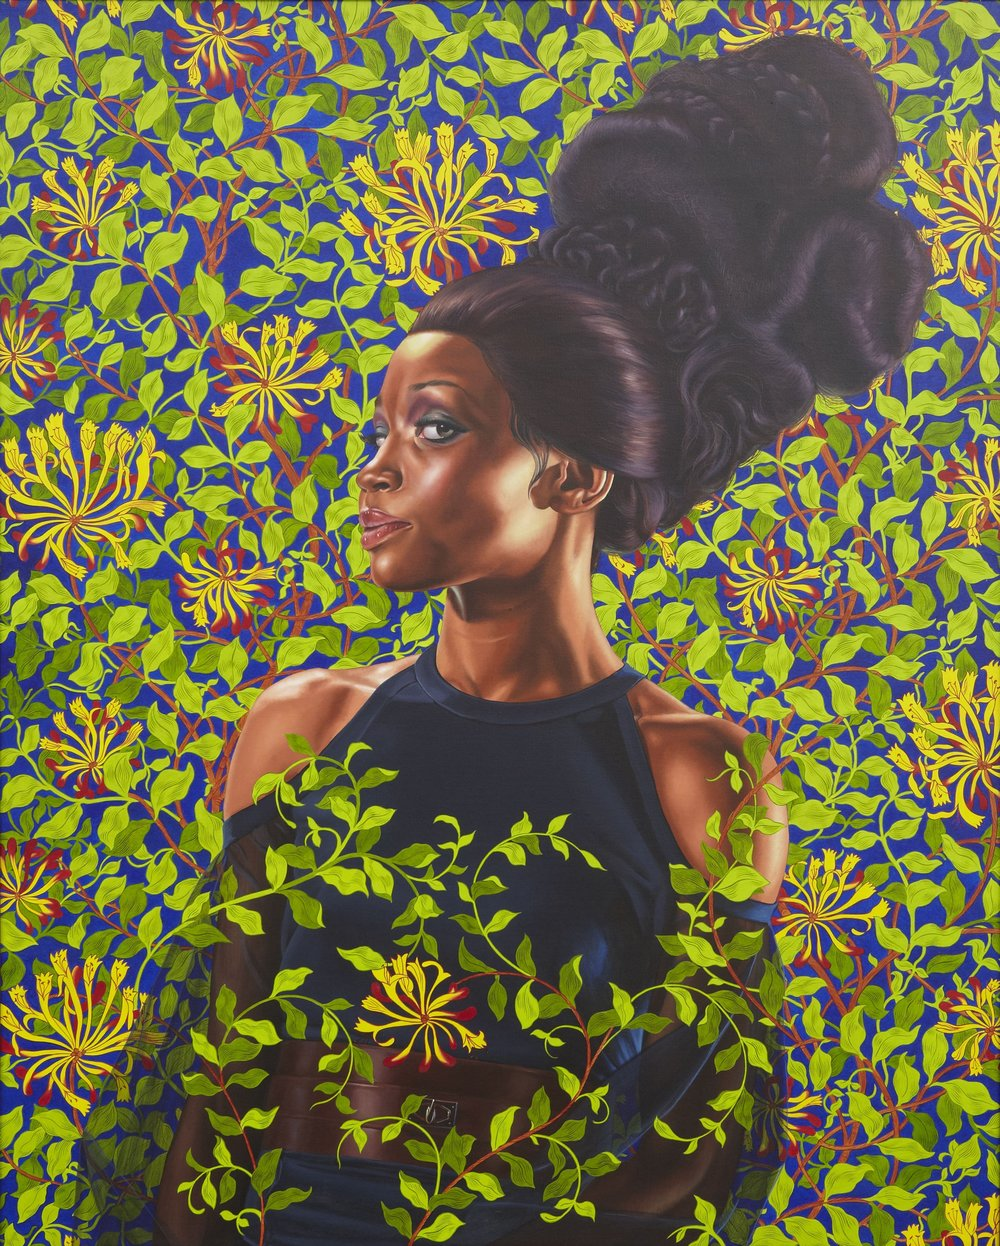 2015_Kehinde_Wiley_EL137.39_2797W.jpg